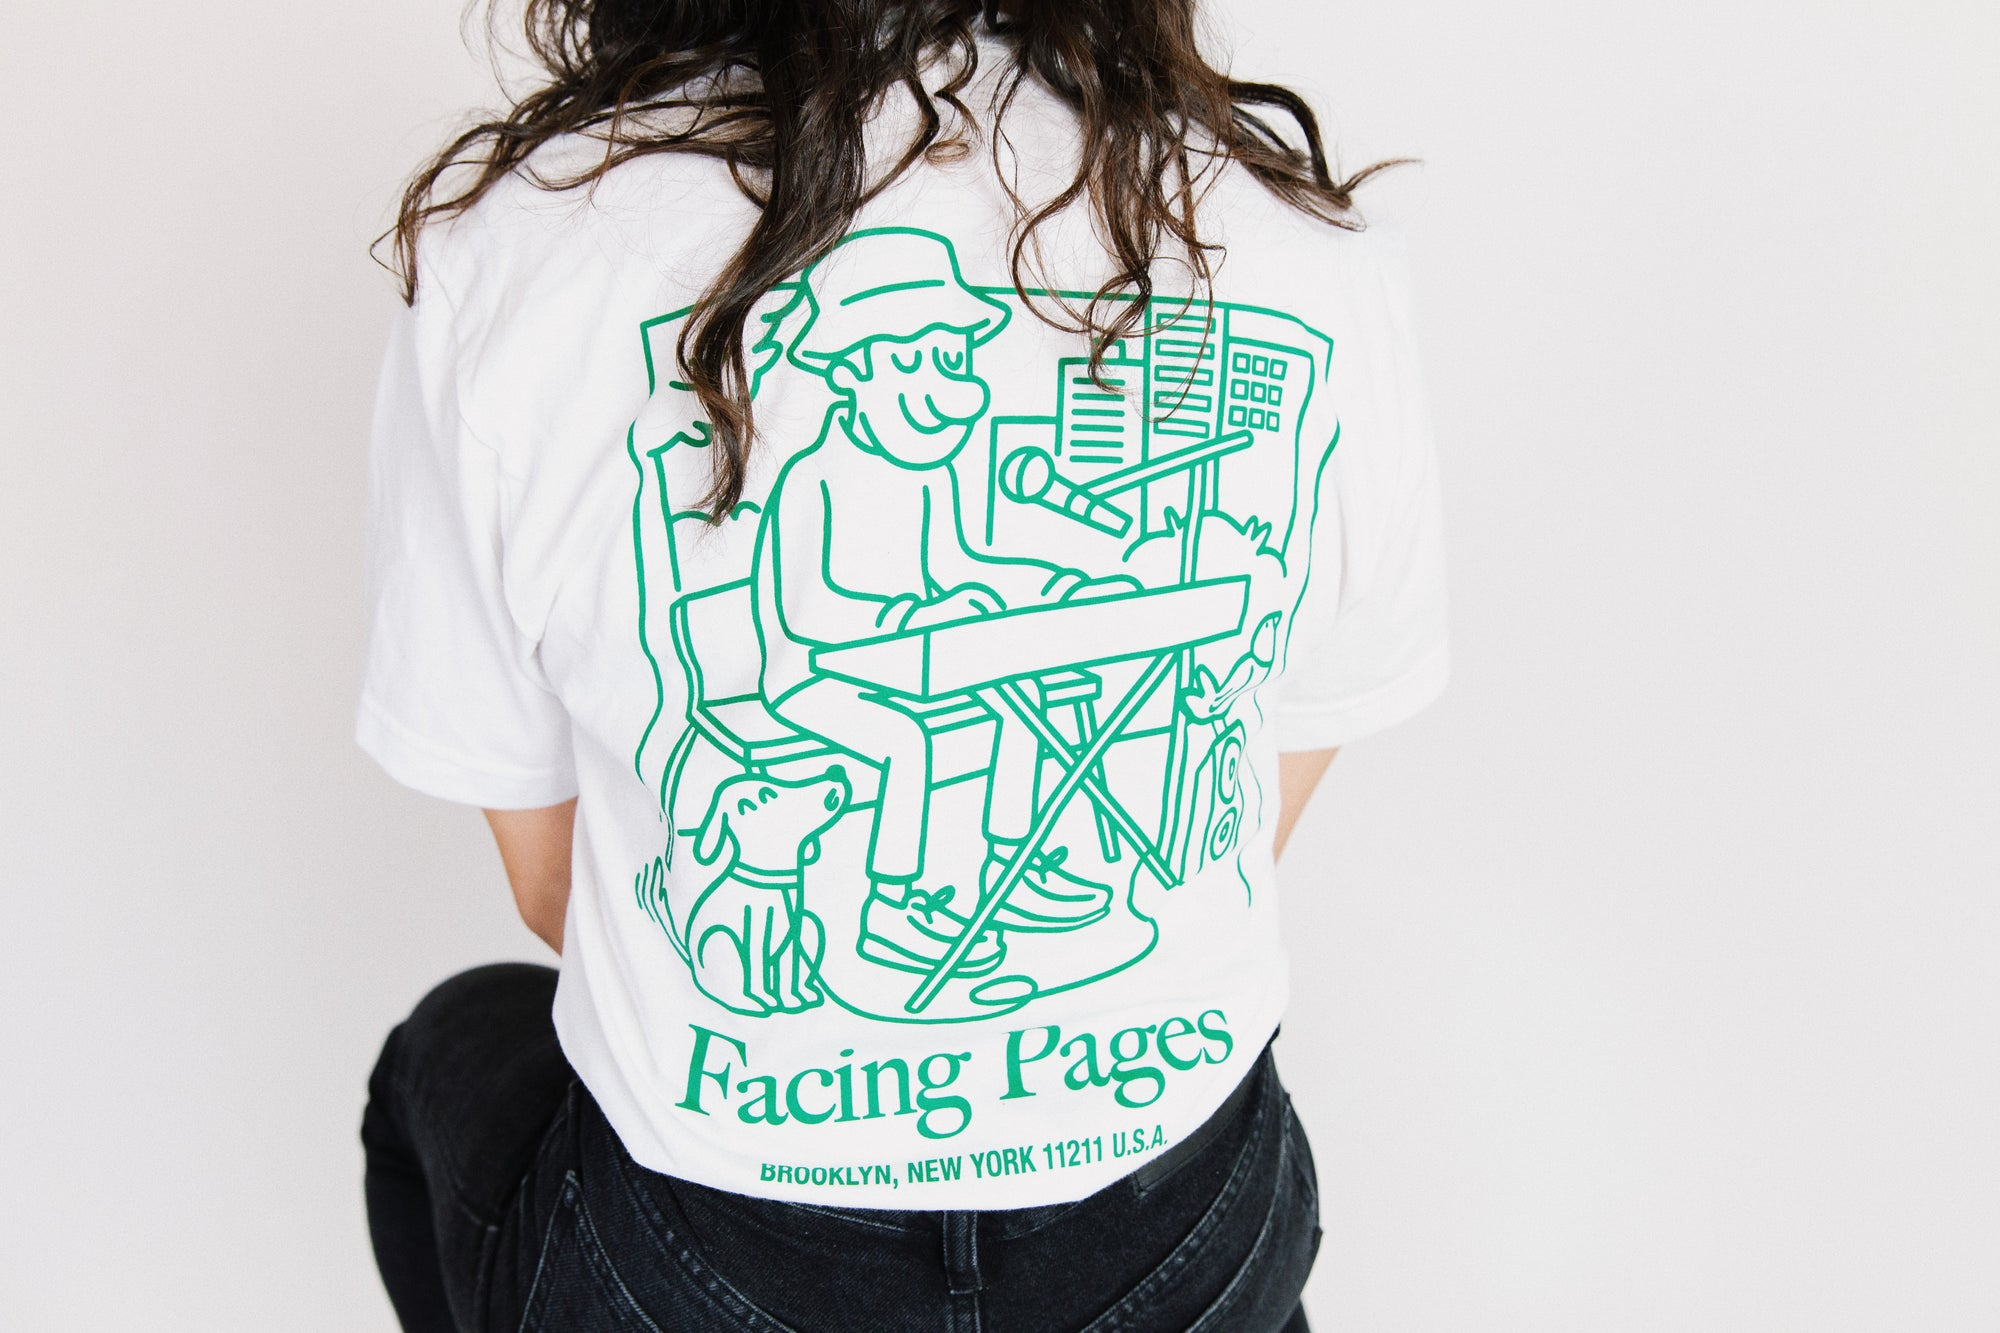 Welcome to Facing Pages